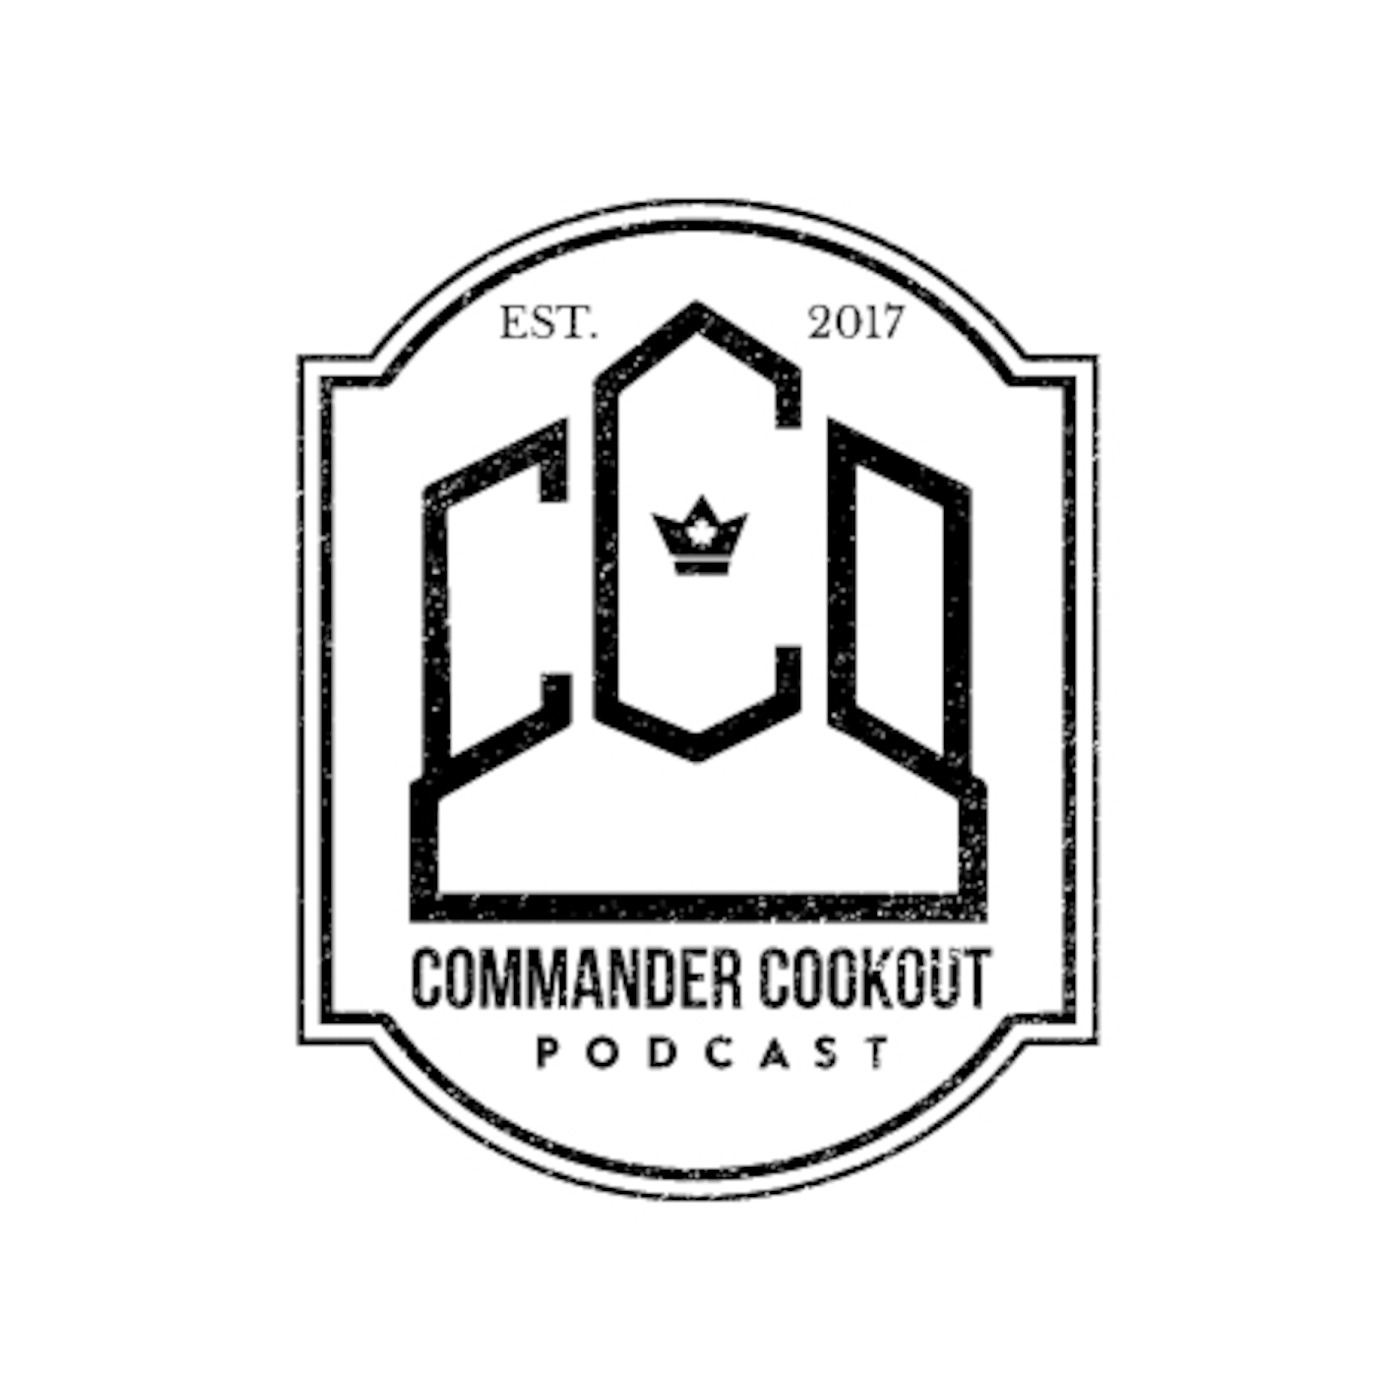 Commander Cookout, Ep 95 - Lyzolda Sacs In The New Year